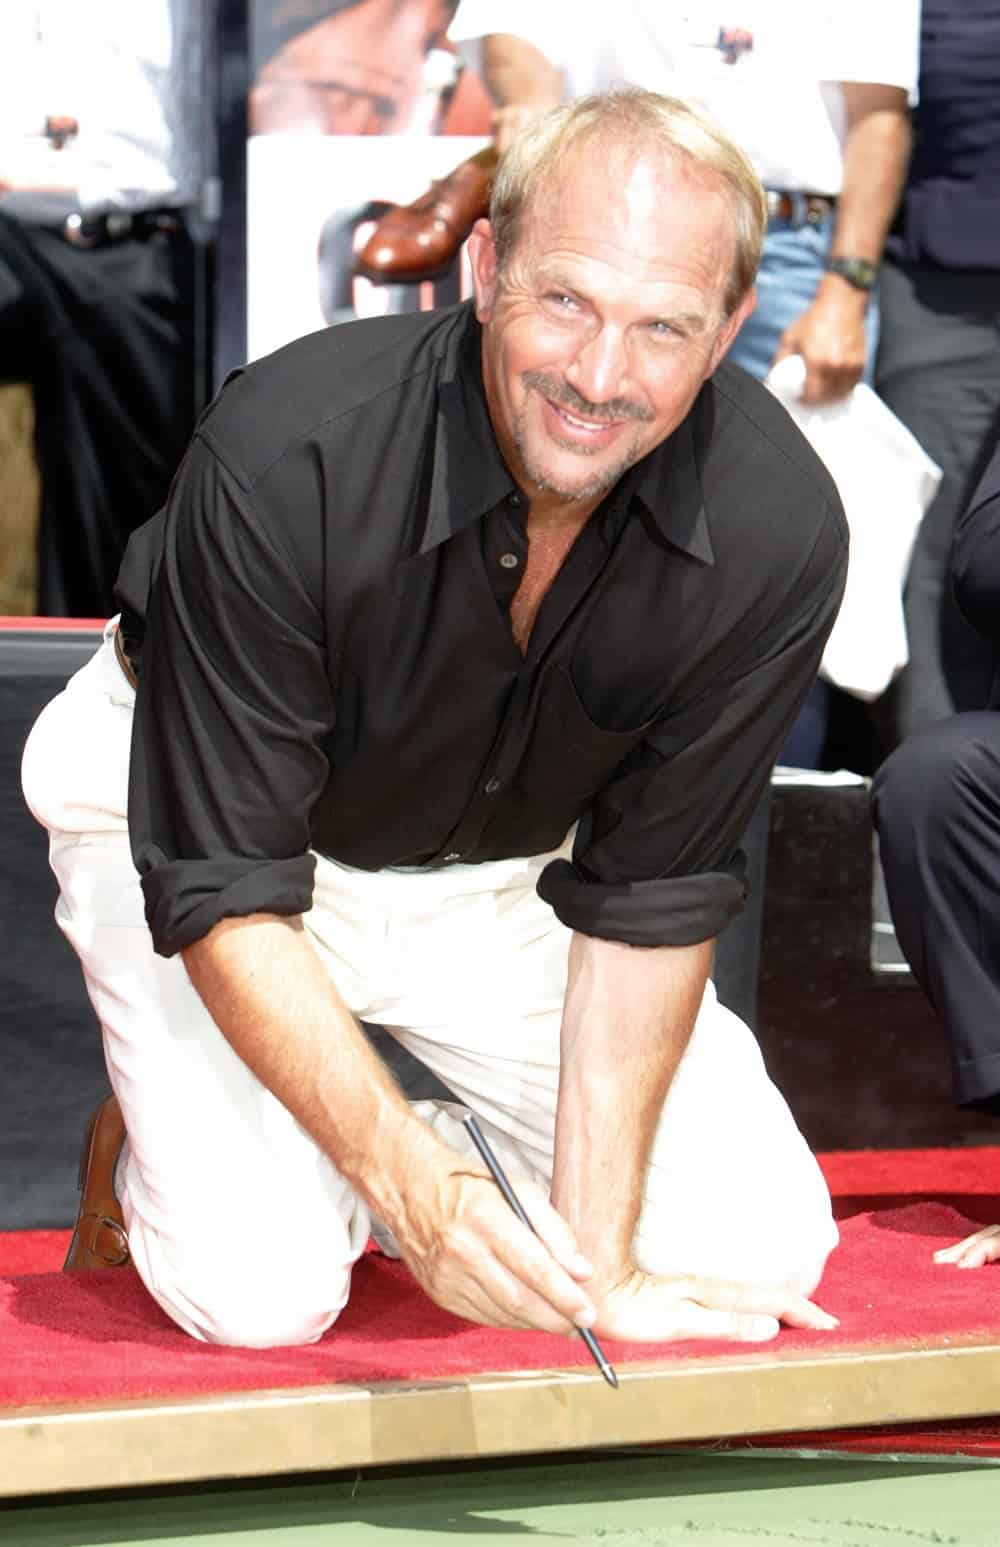 US actor Kevin Costner signs his name on